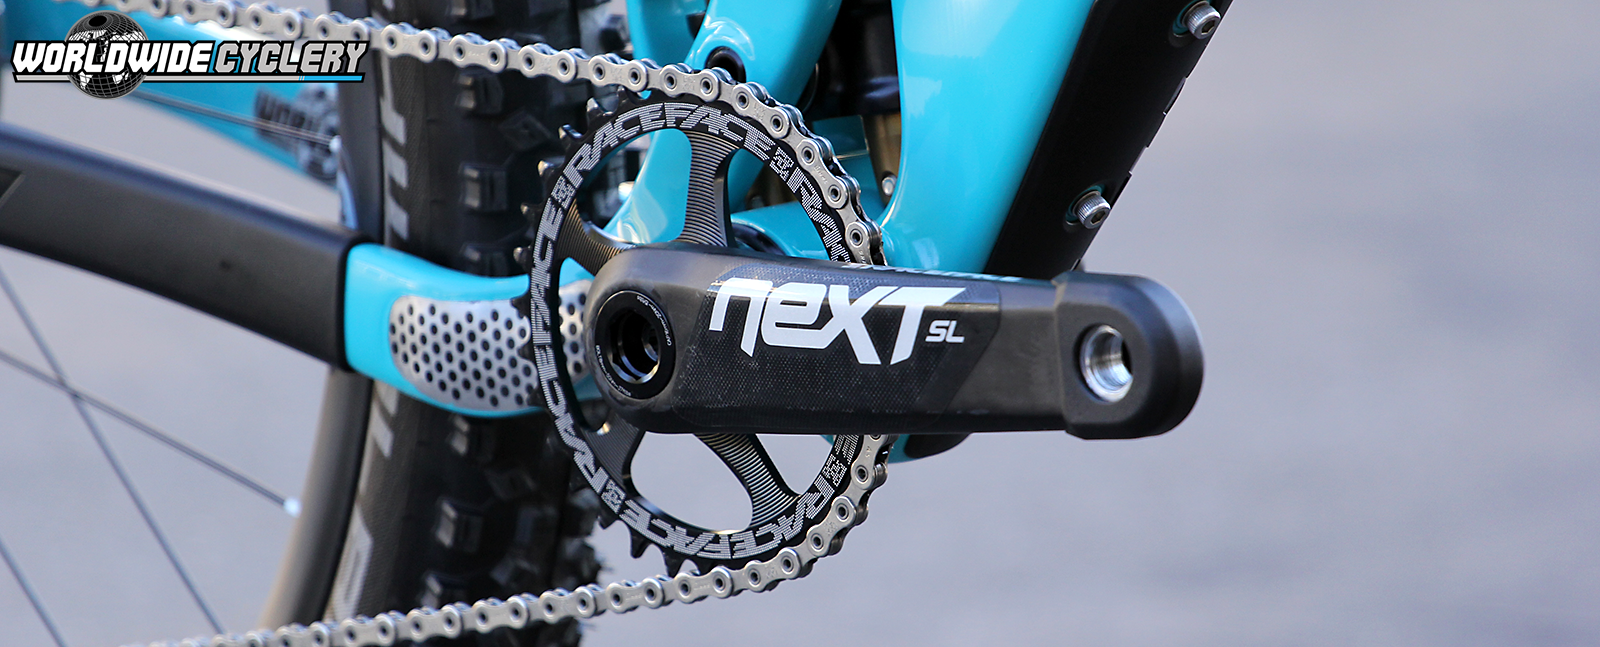 Race Face Next SL Crankset - Worldwide Cyclery